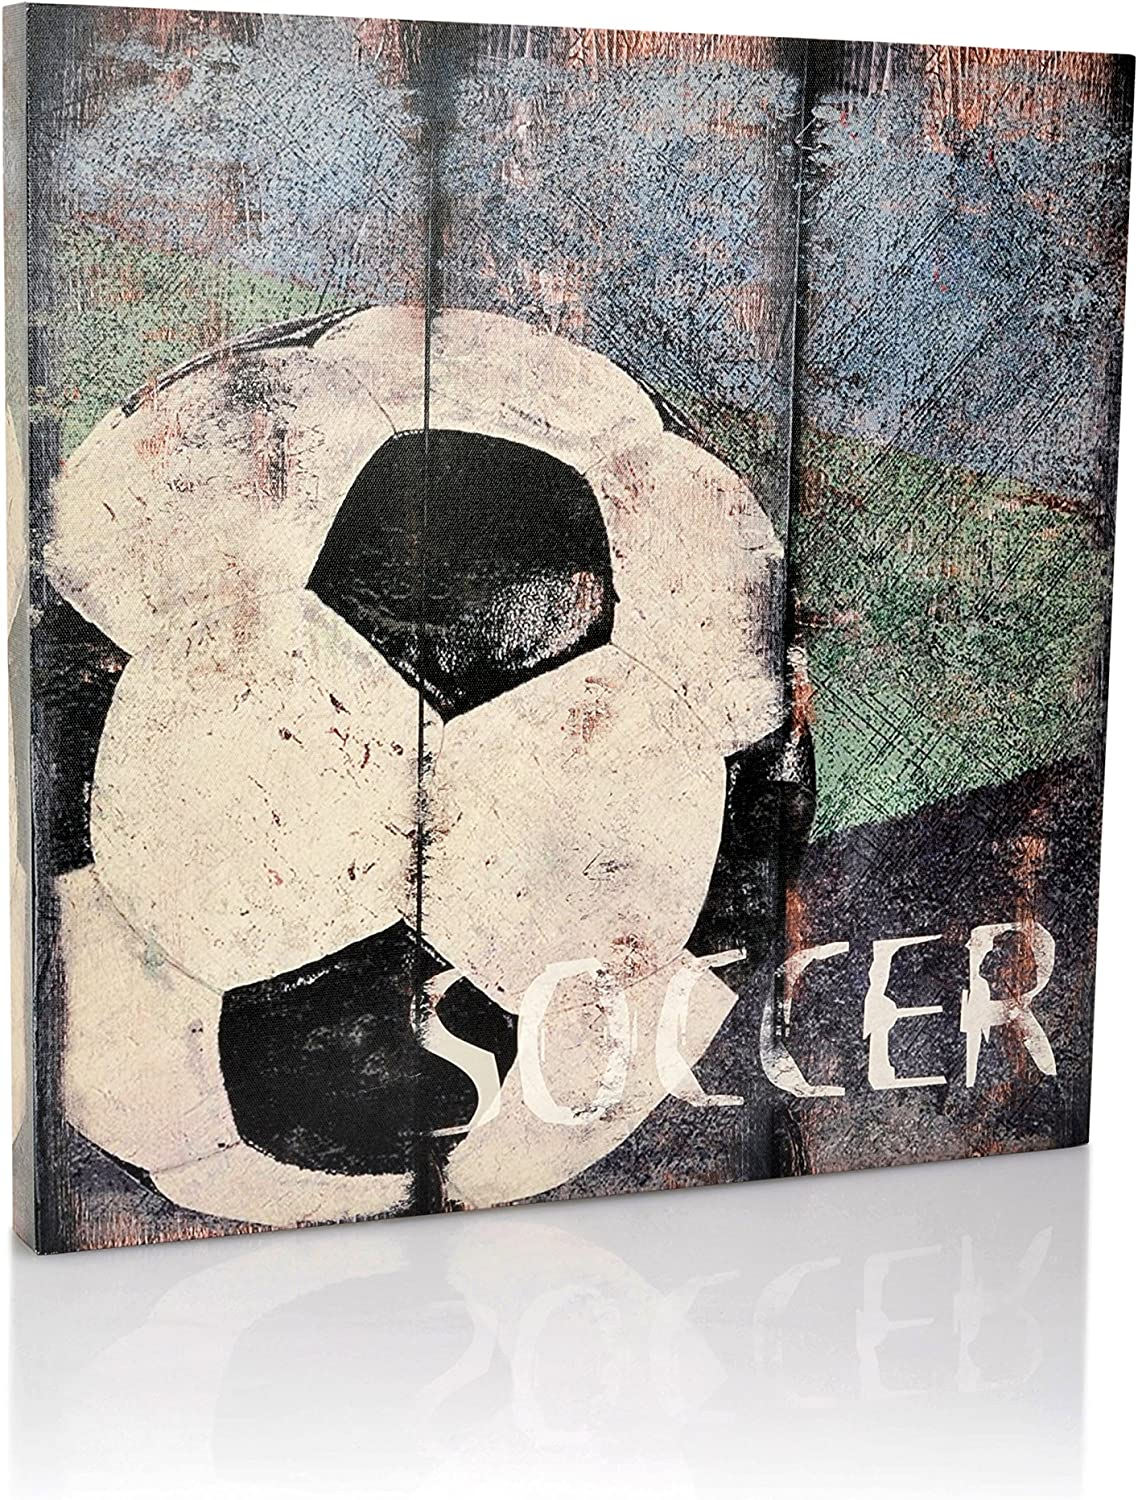 "Soccer Sports Canvas Wall Art | Boys Bedroom Décor | Kids Room | Vintage Sports Art | Soccer Decor | For Sports Room & Game Room | Great Gift | Large Size 18""x18"""